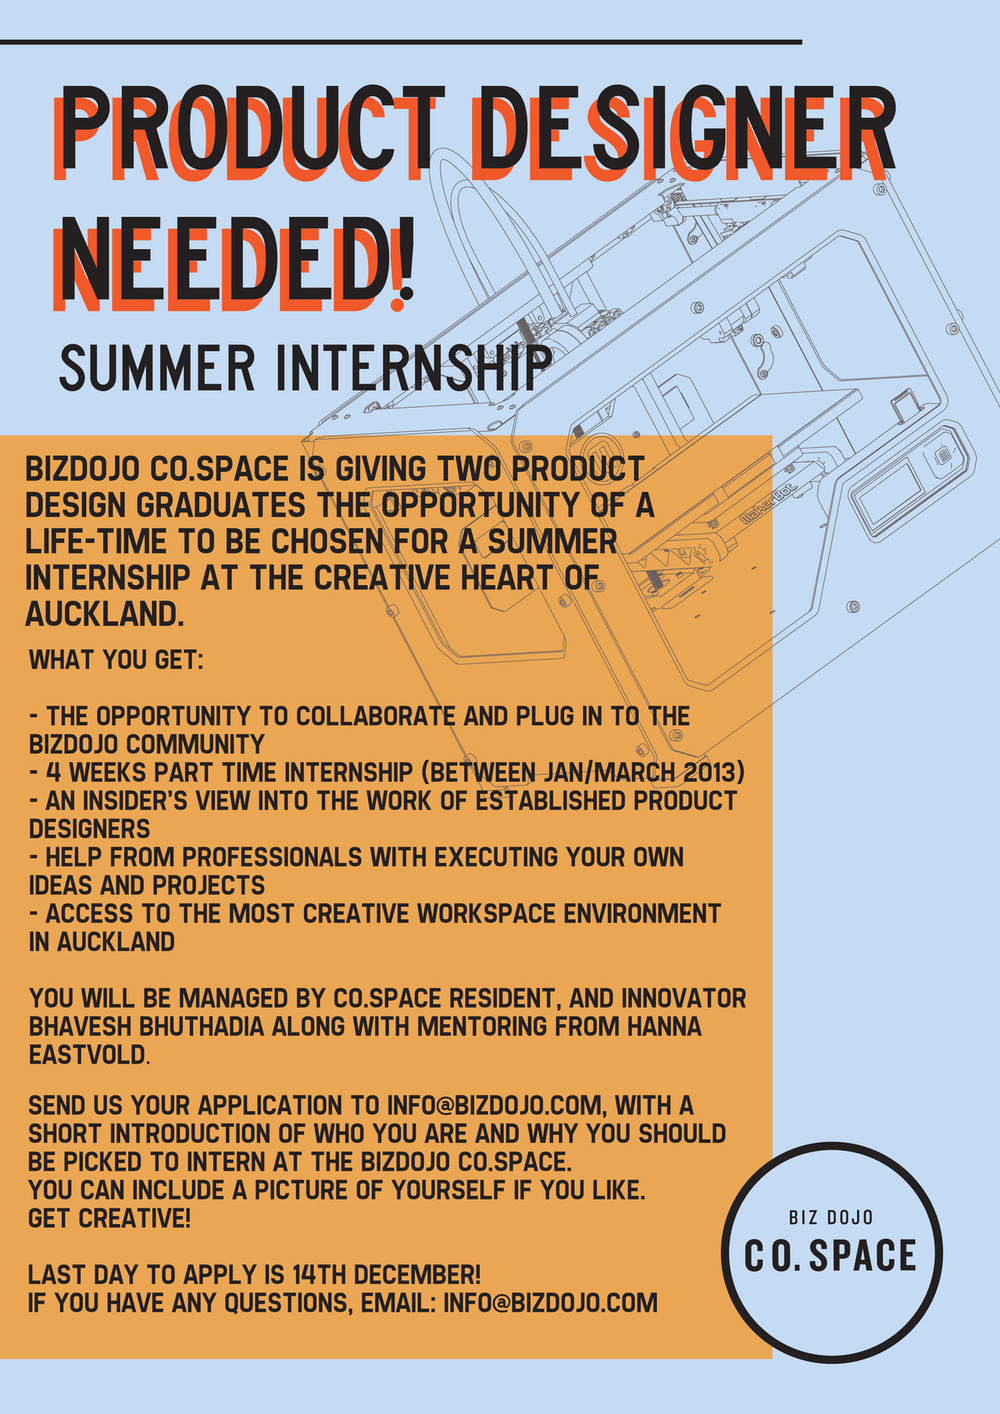 APPLY NOW! Only a week to apply for a Summer Internship at Co.Space. Please share this link on Facebook: Product Design Grad Needed! if you know any Product Design Graduates!